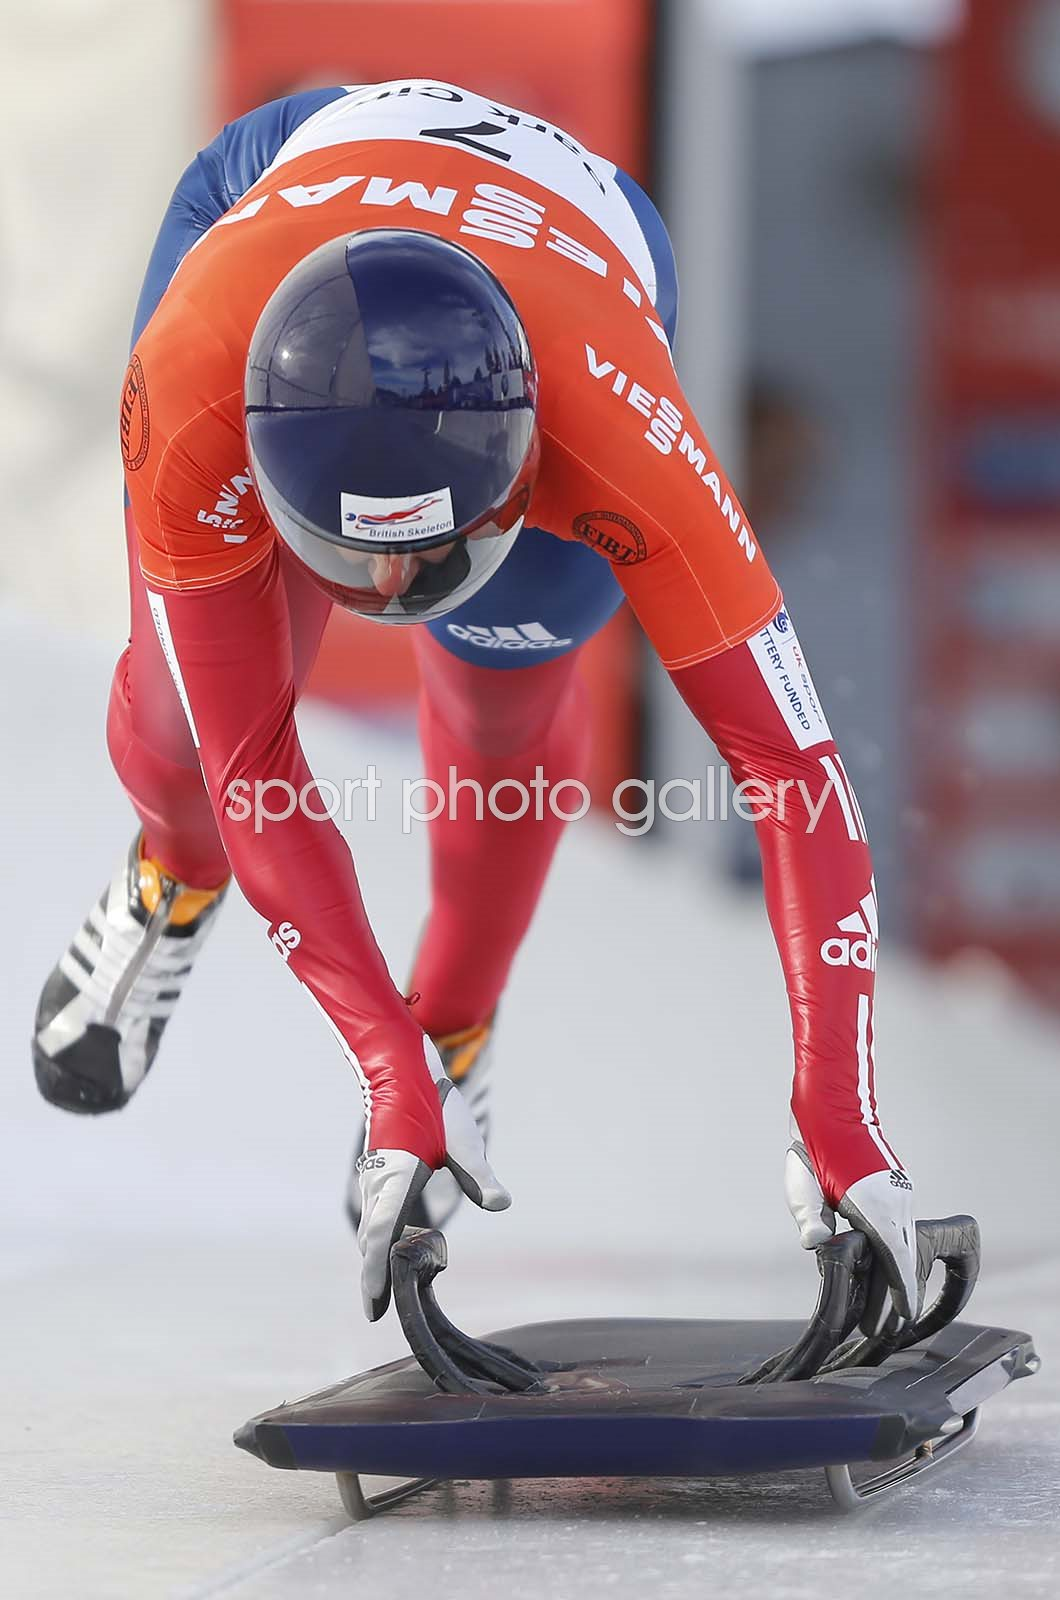 Lizzy Yarnold Park City Bobsled and Skeleton World Cup 2012